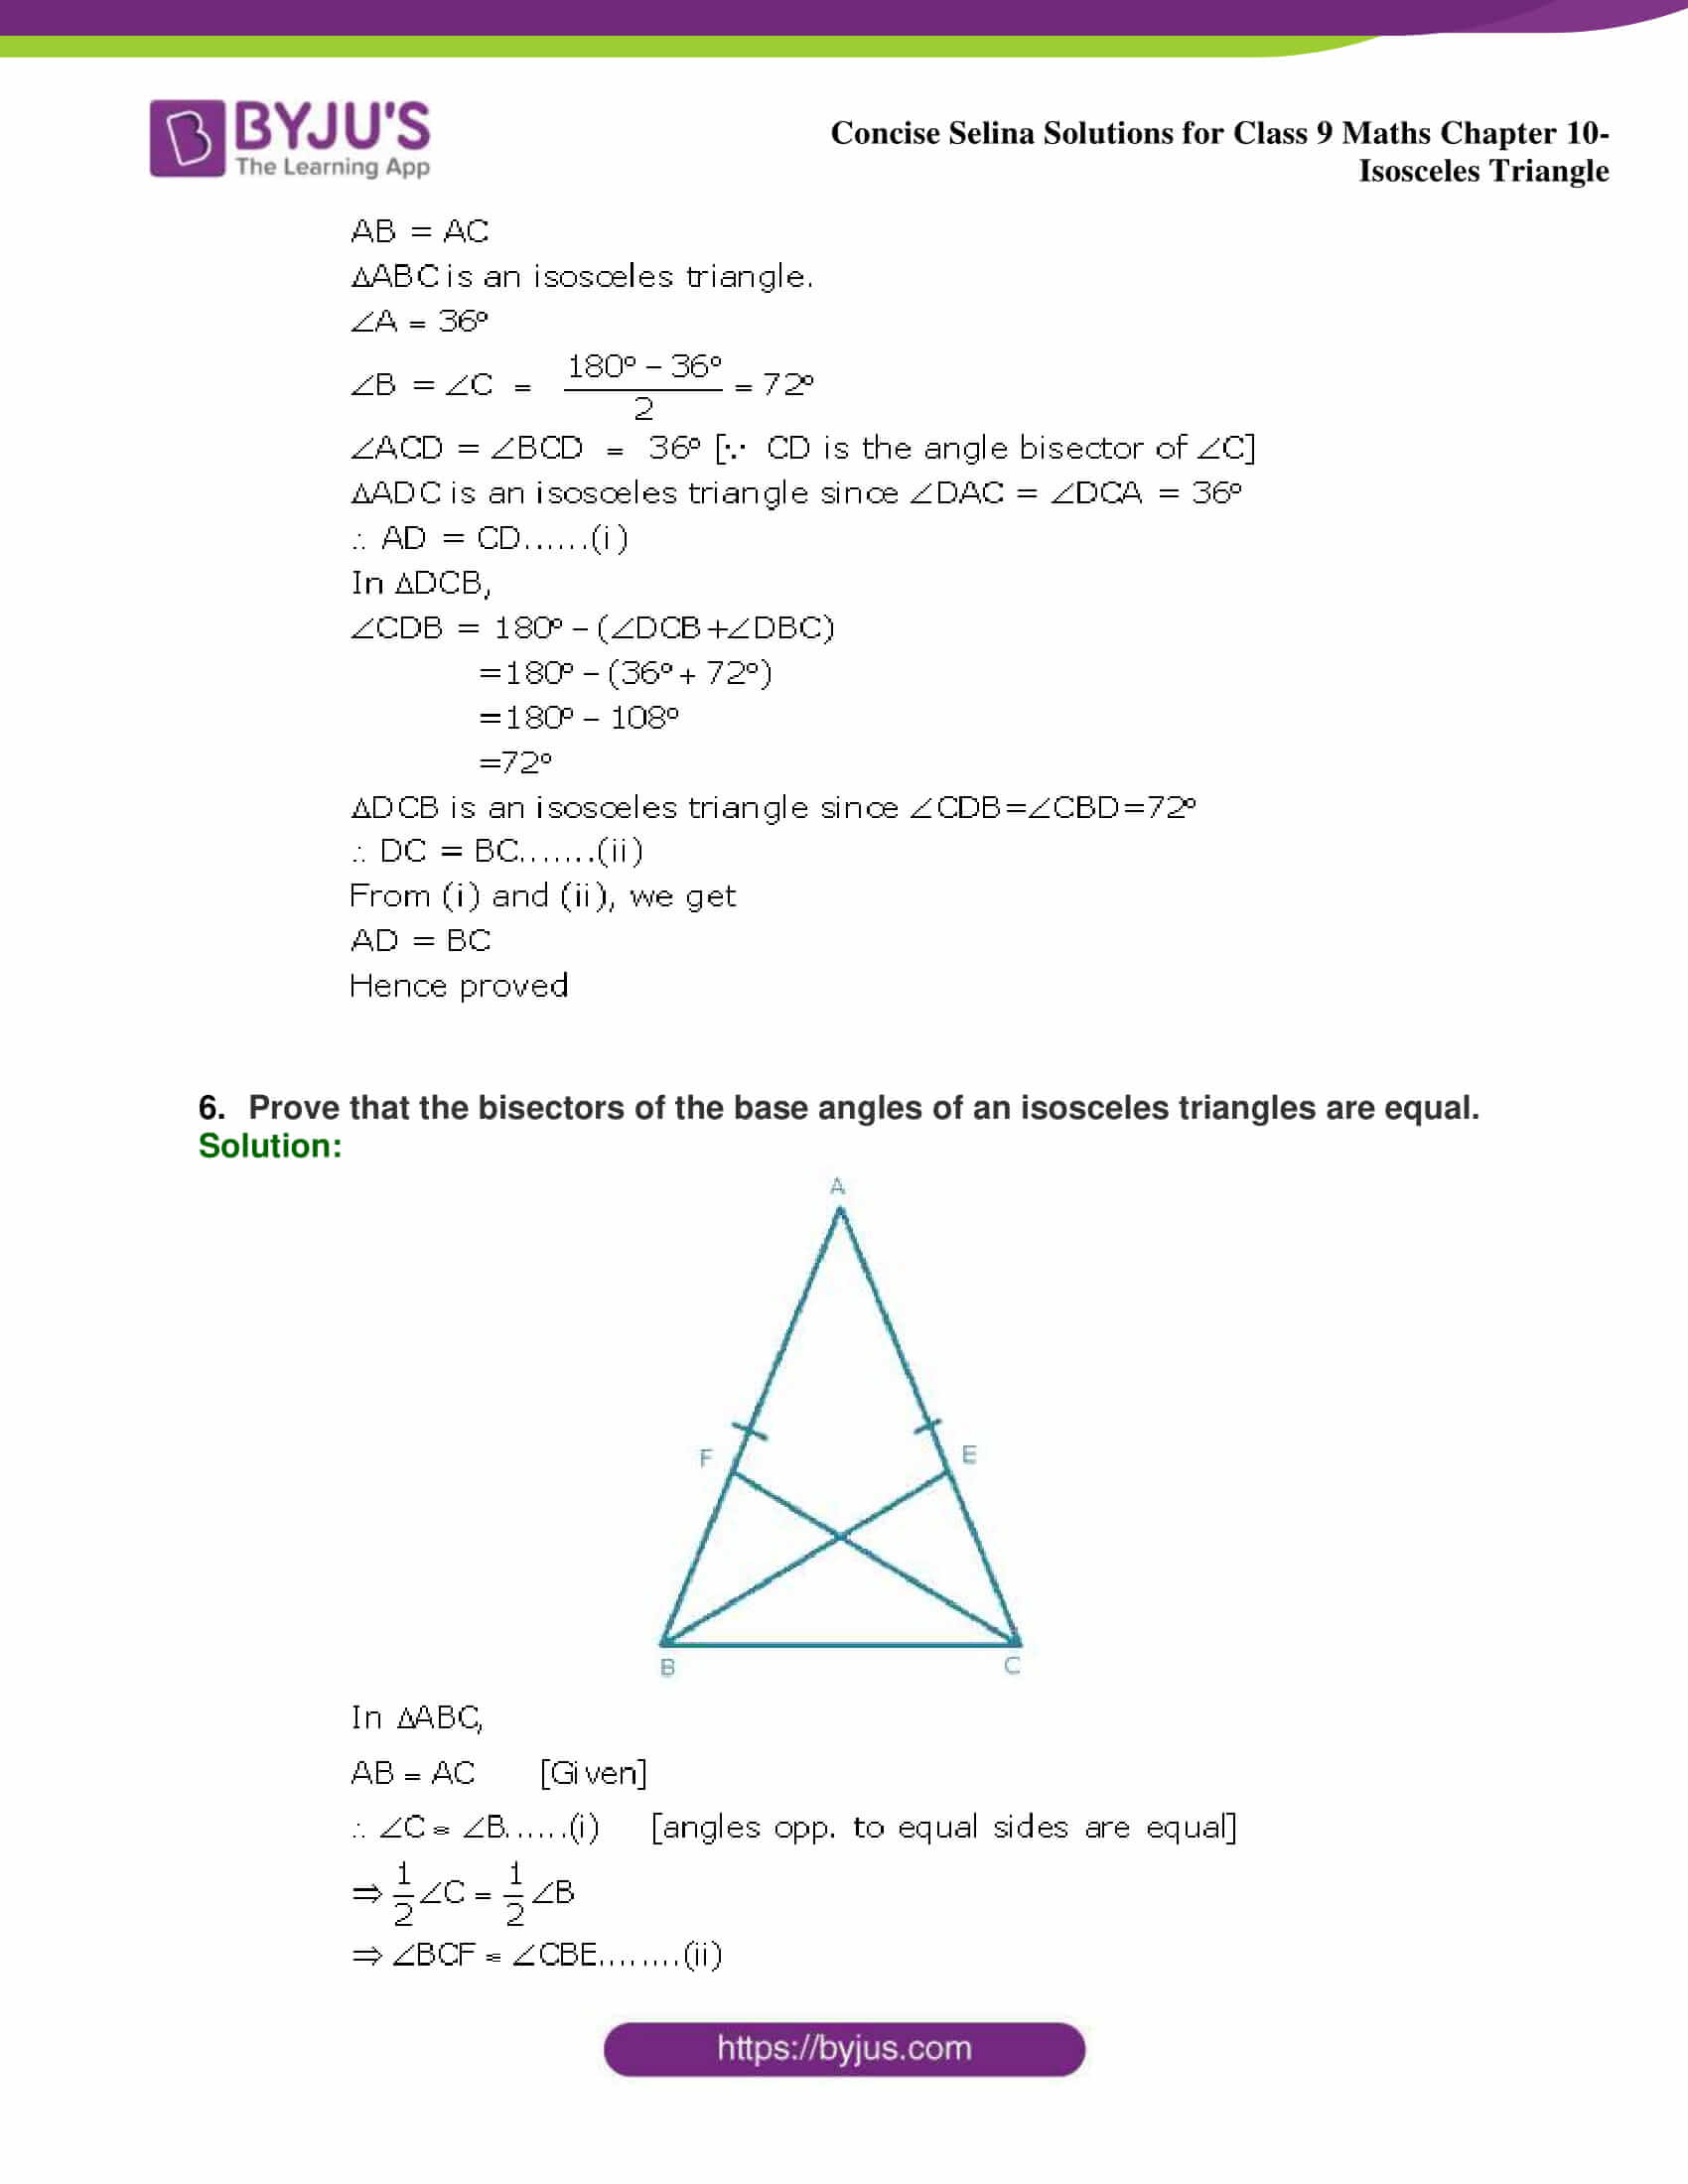 selina Solutions for Class 9 Maths Chapter 10 part 26